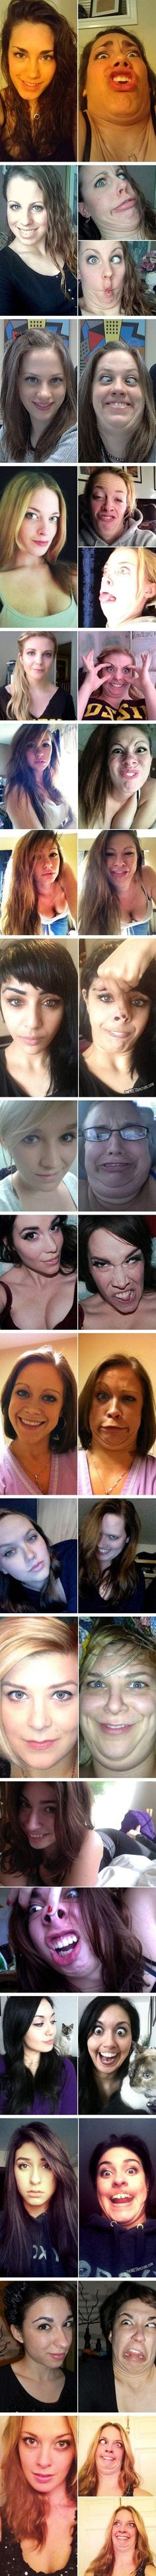 The difference of us girls in public verses with our friends SPOT ON. Proof that every funny face needs a double chin.